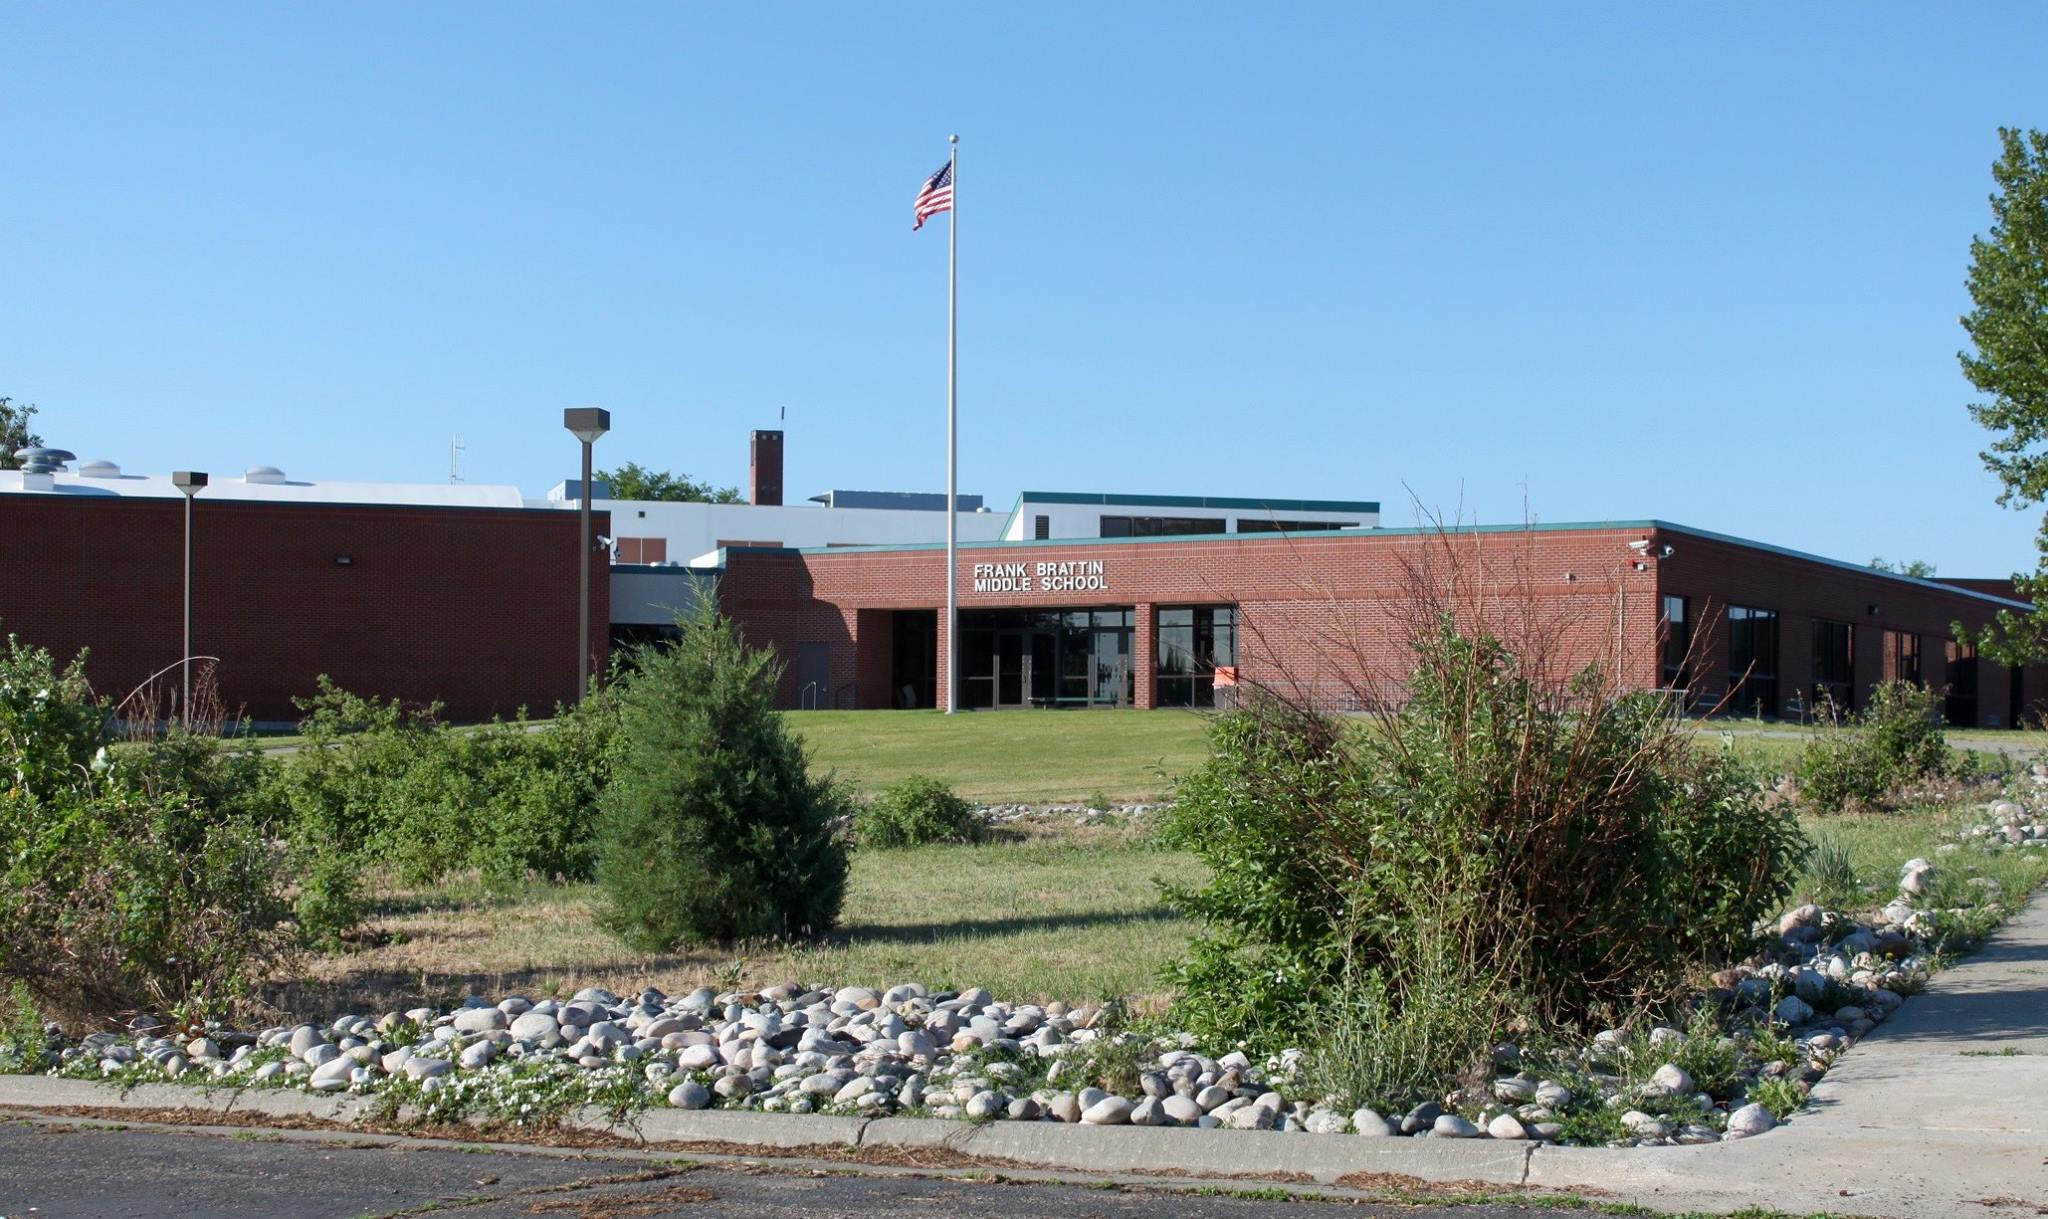 Frank Brattin Middle School